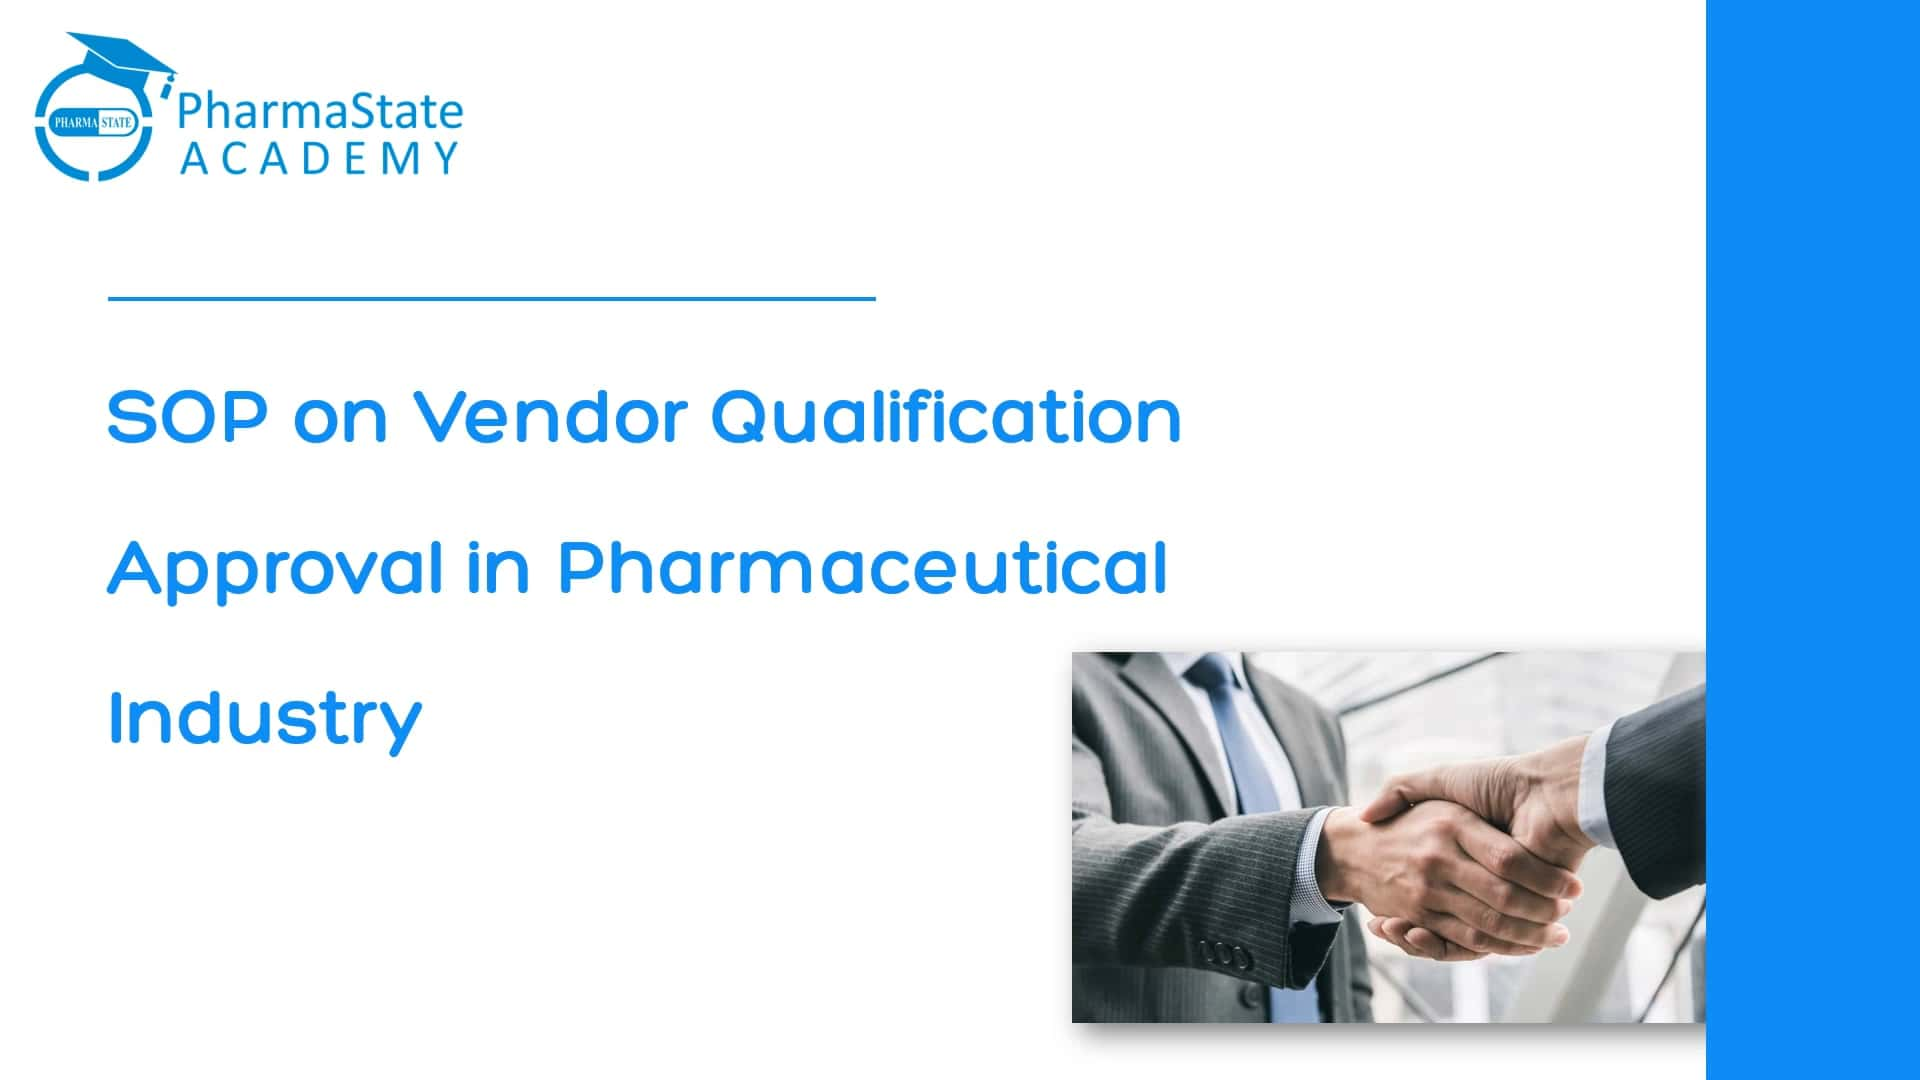 SOP for Vendor Qualification Approval in Pharmaceutical Industry